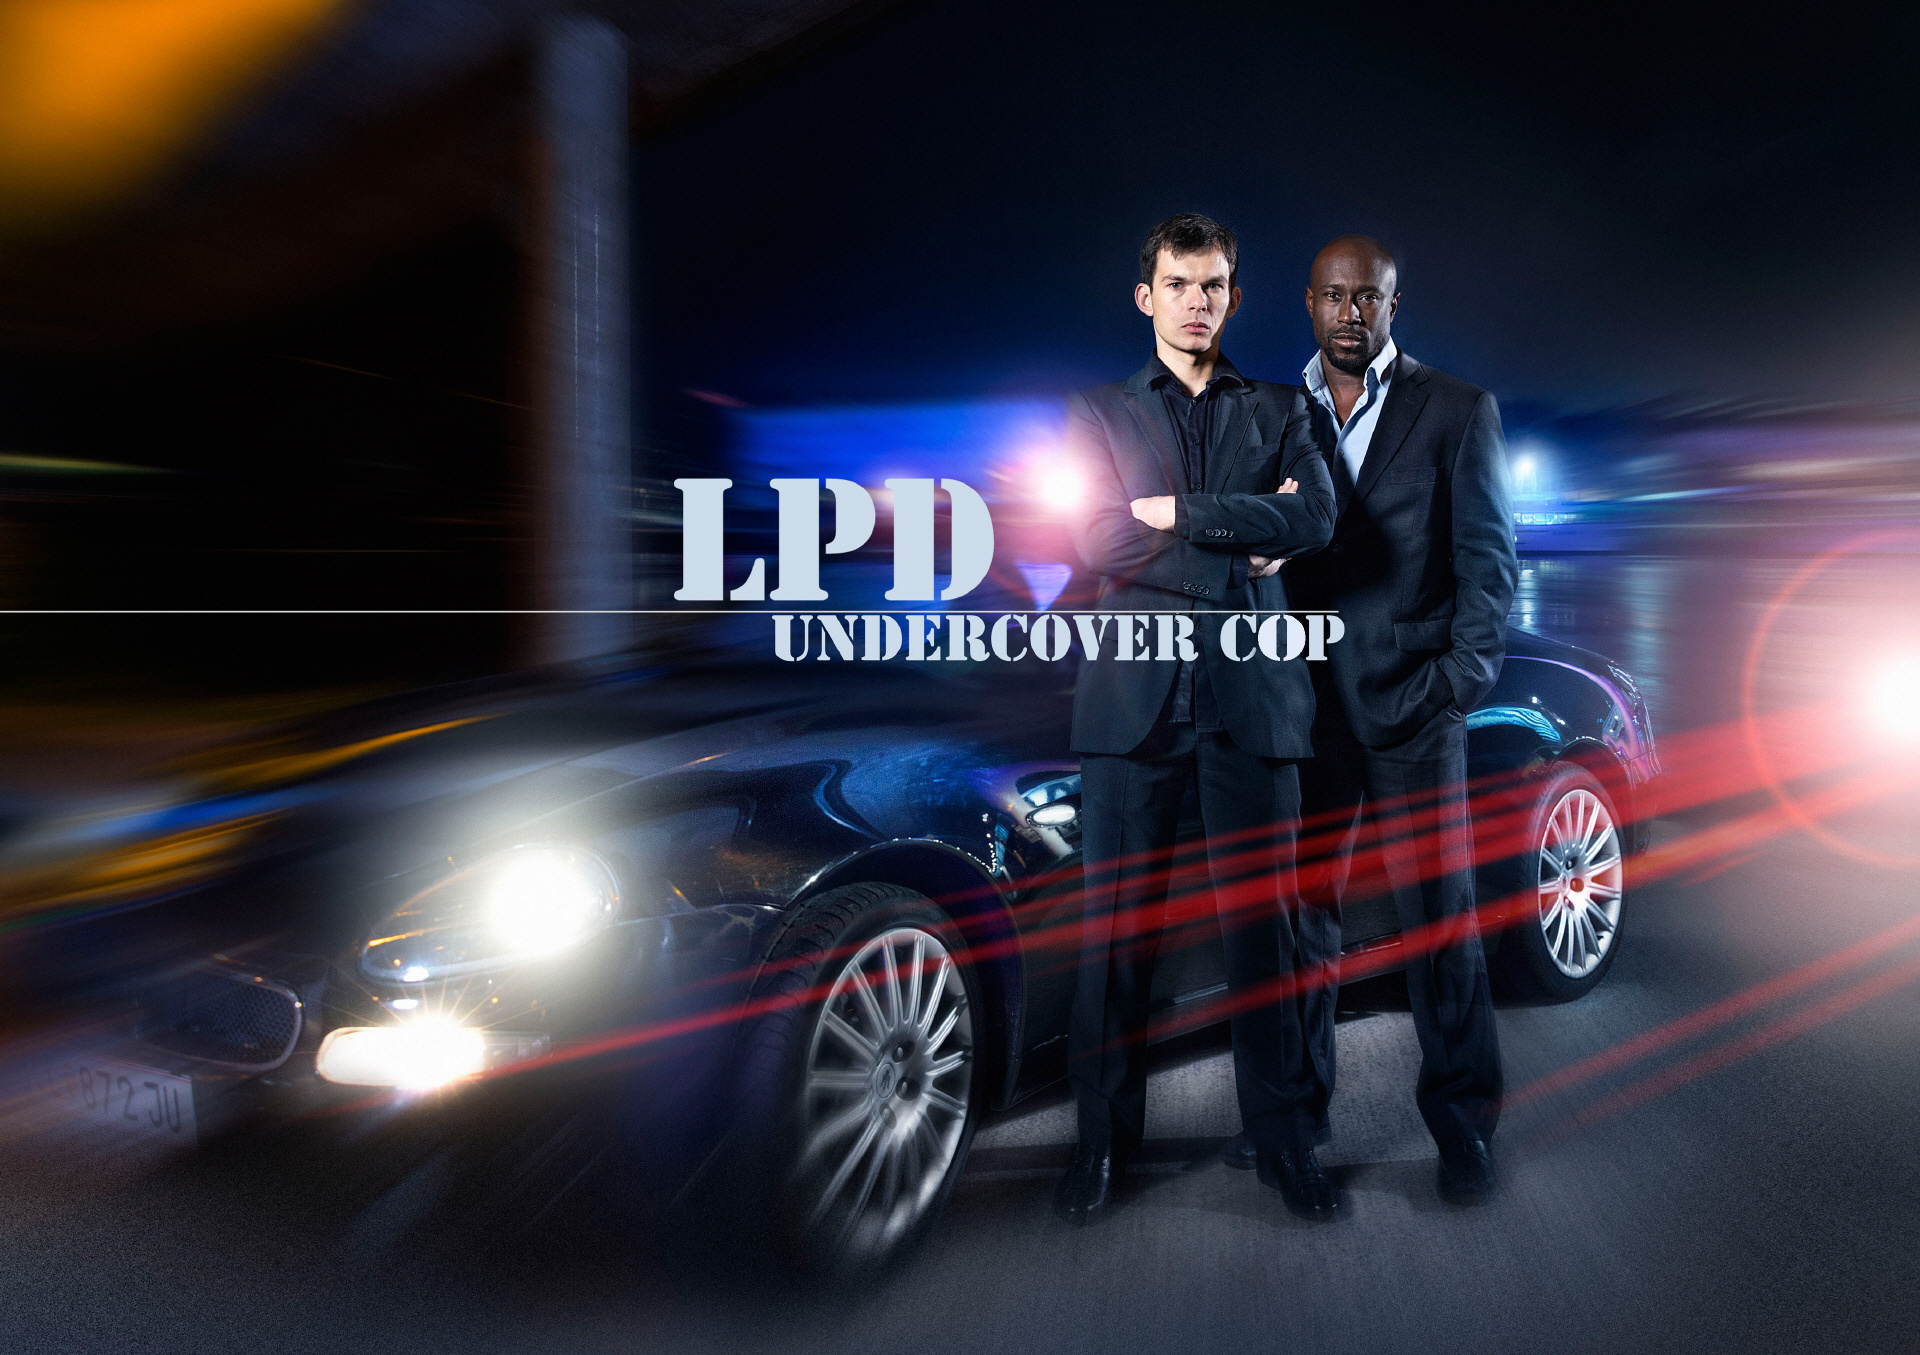 http://www.lpdundercover.movie/